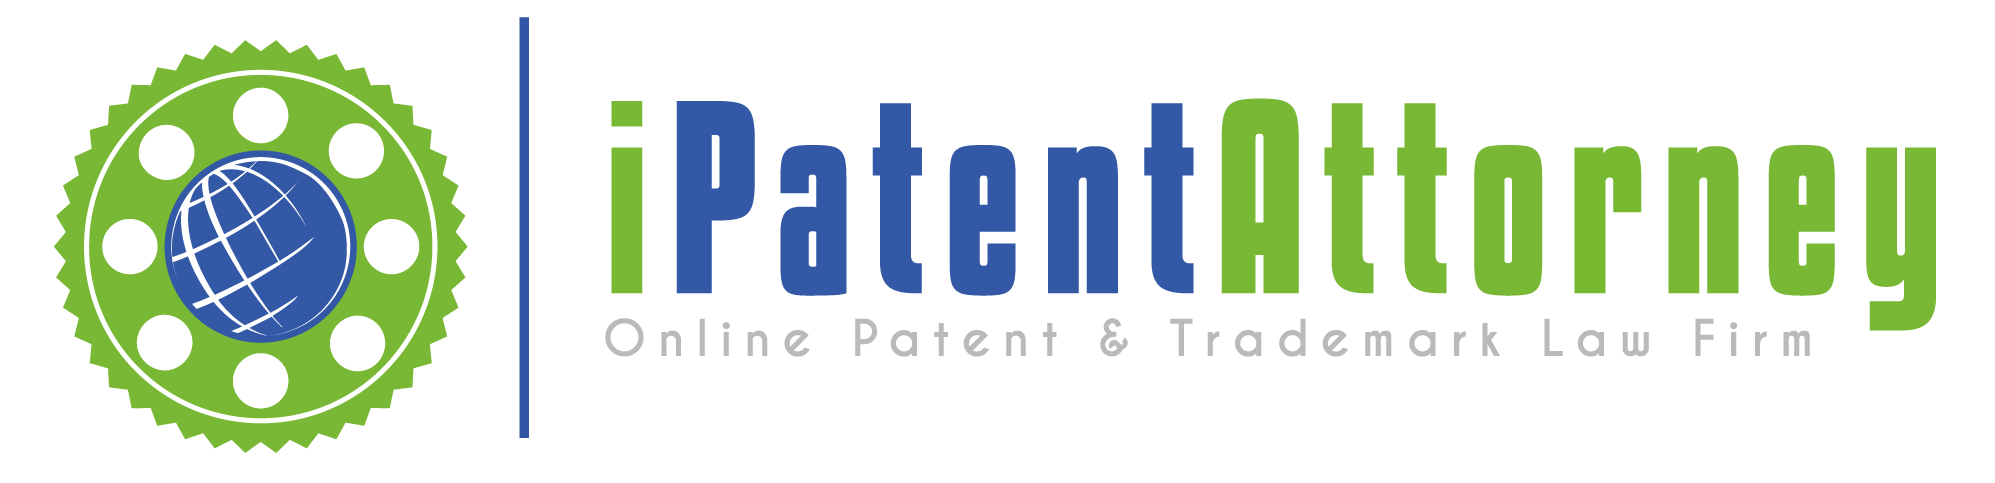 Online Patent Law Firm